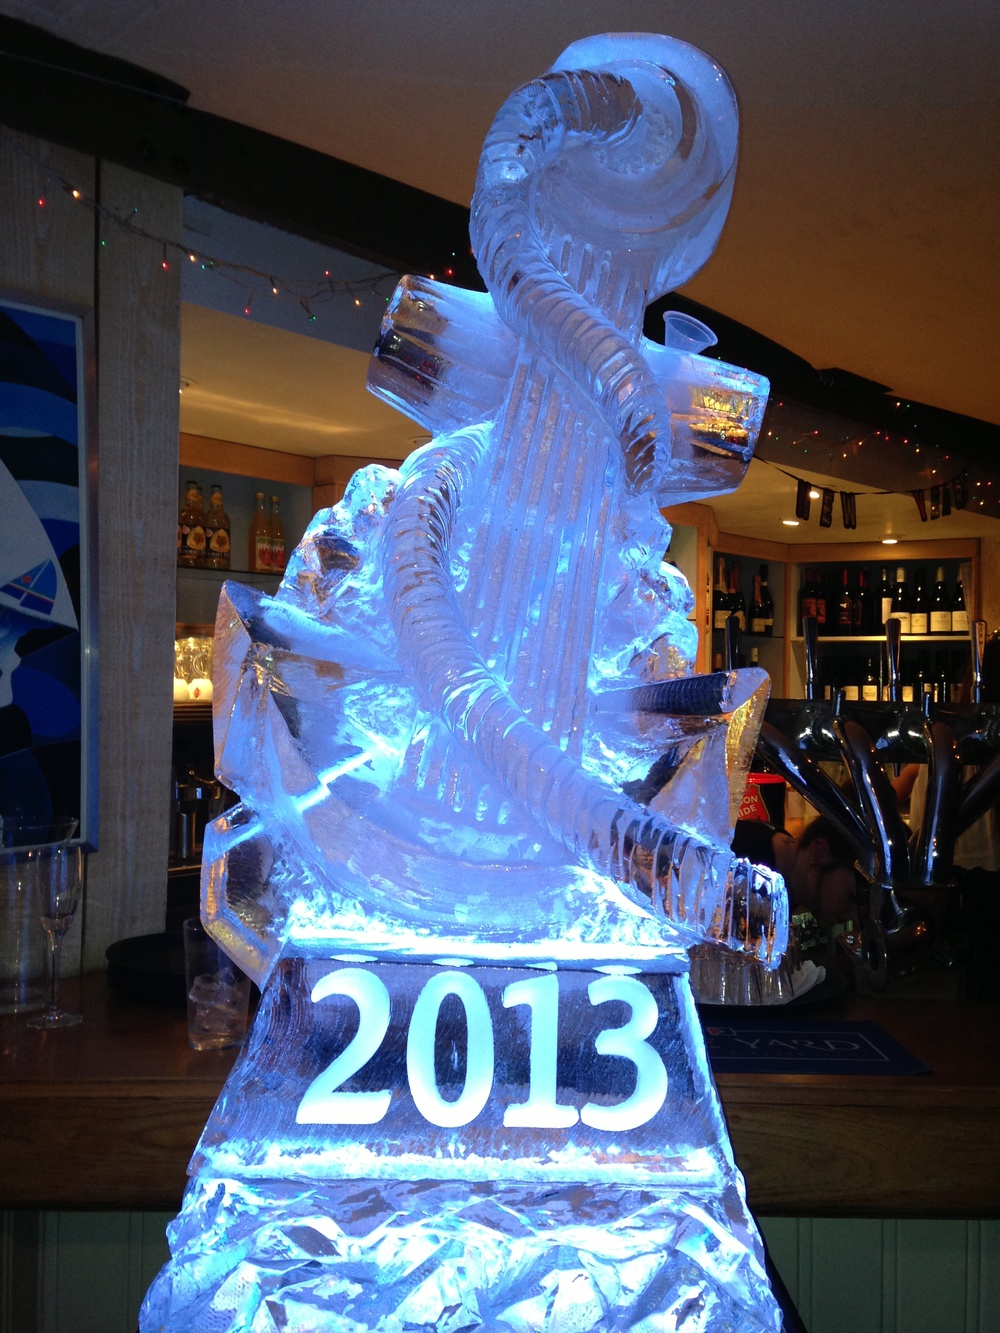 Vodka luge - Anchor with 2013 Engraving